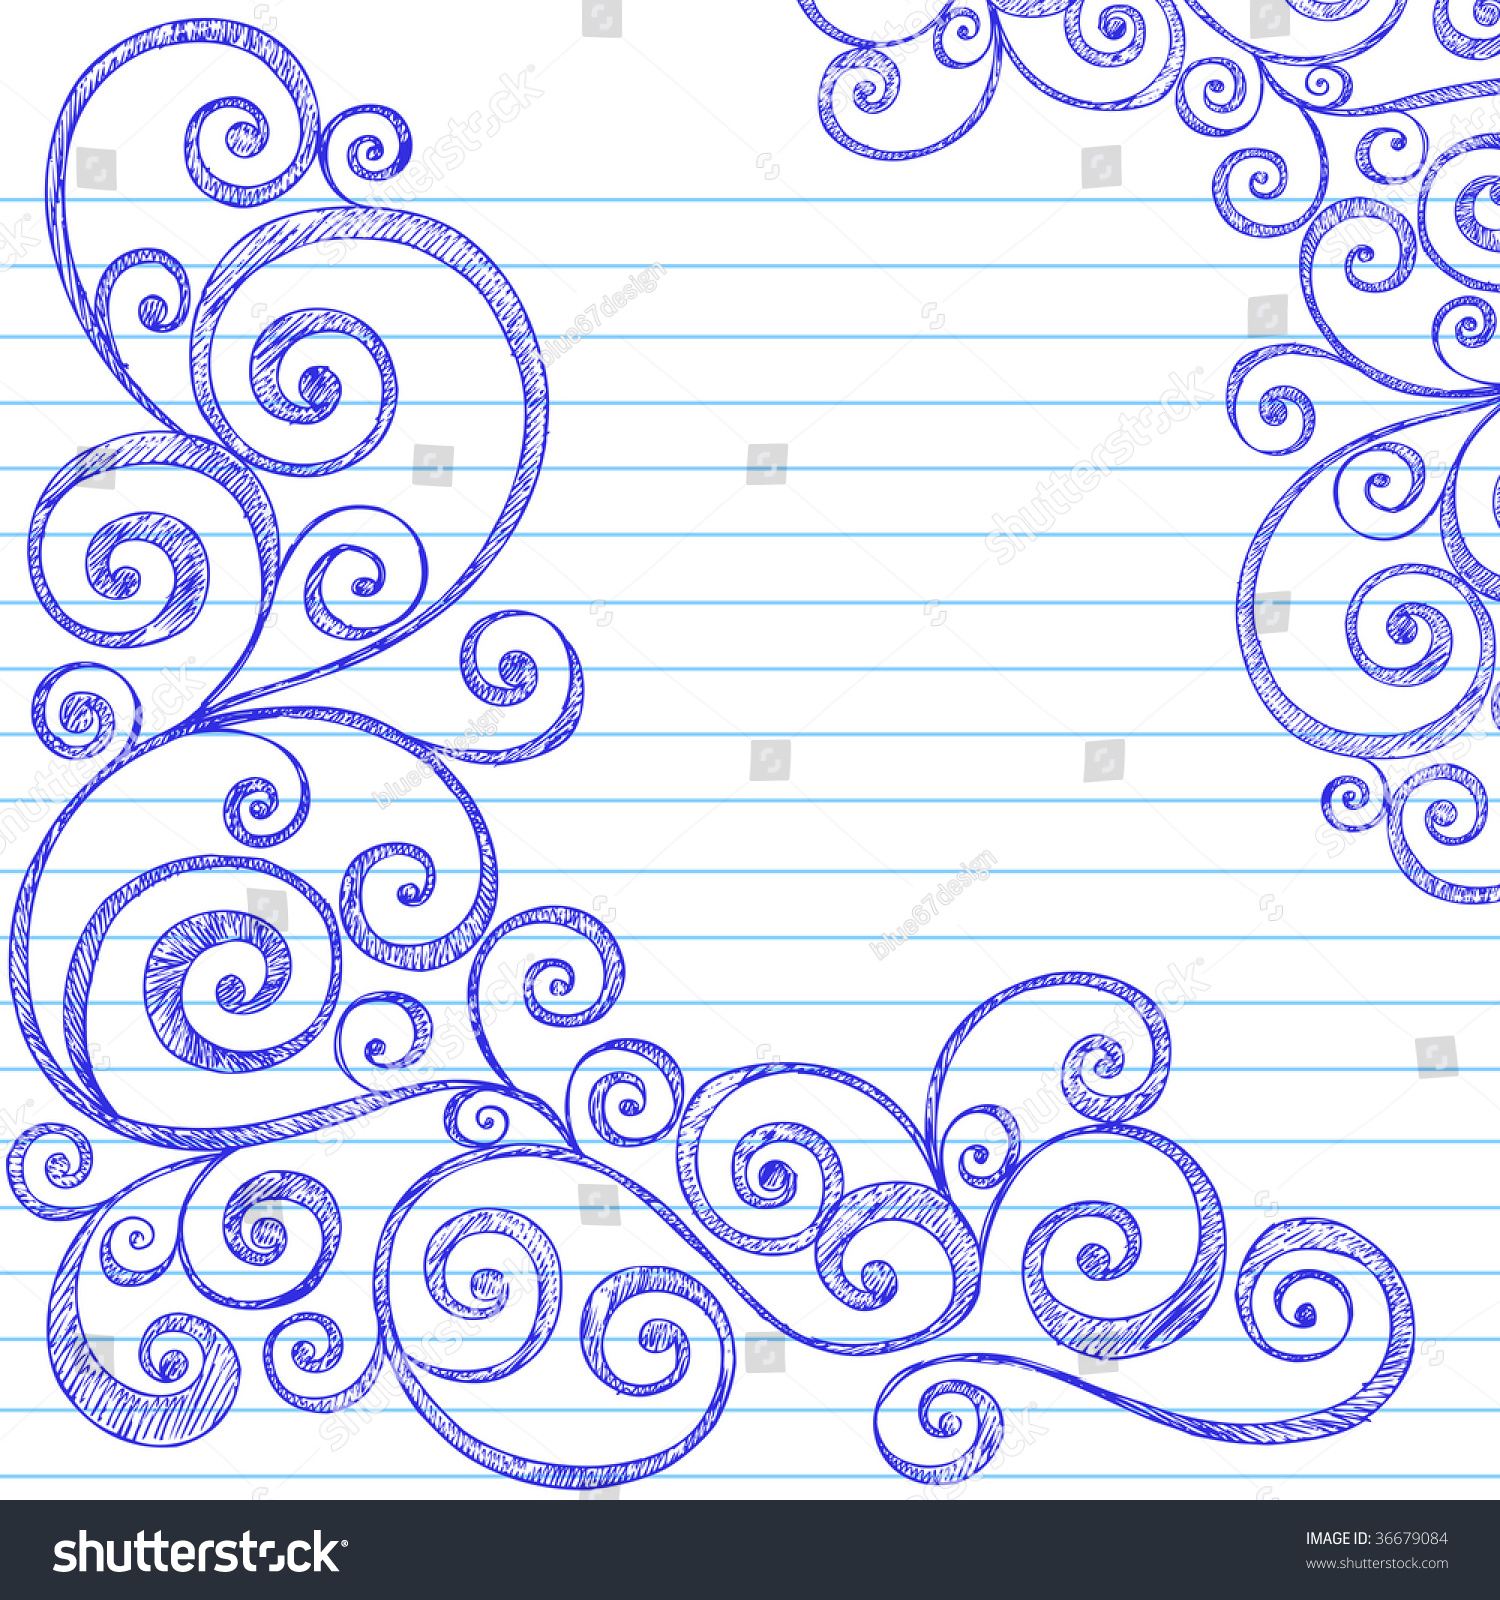 Handdrawn Sketchy Doodles Swirly Border On Stock Vector